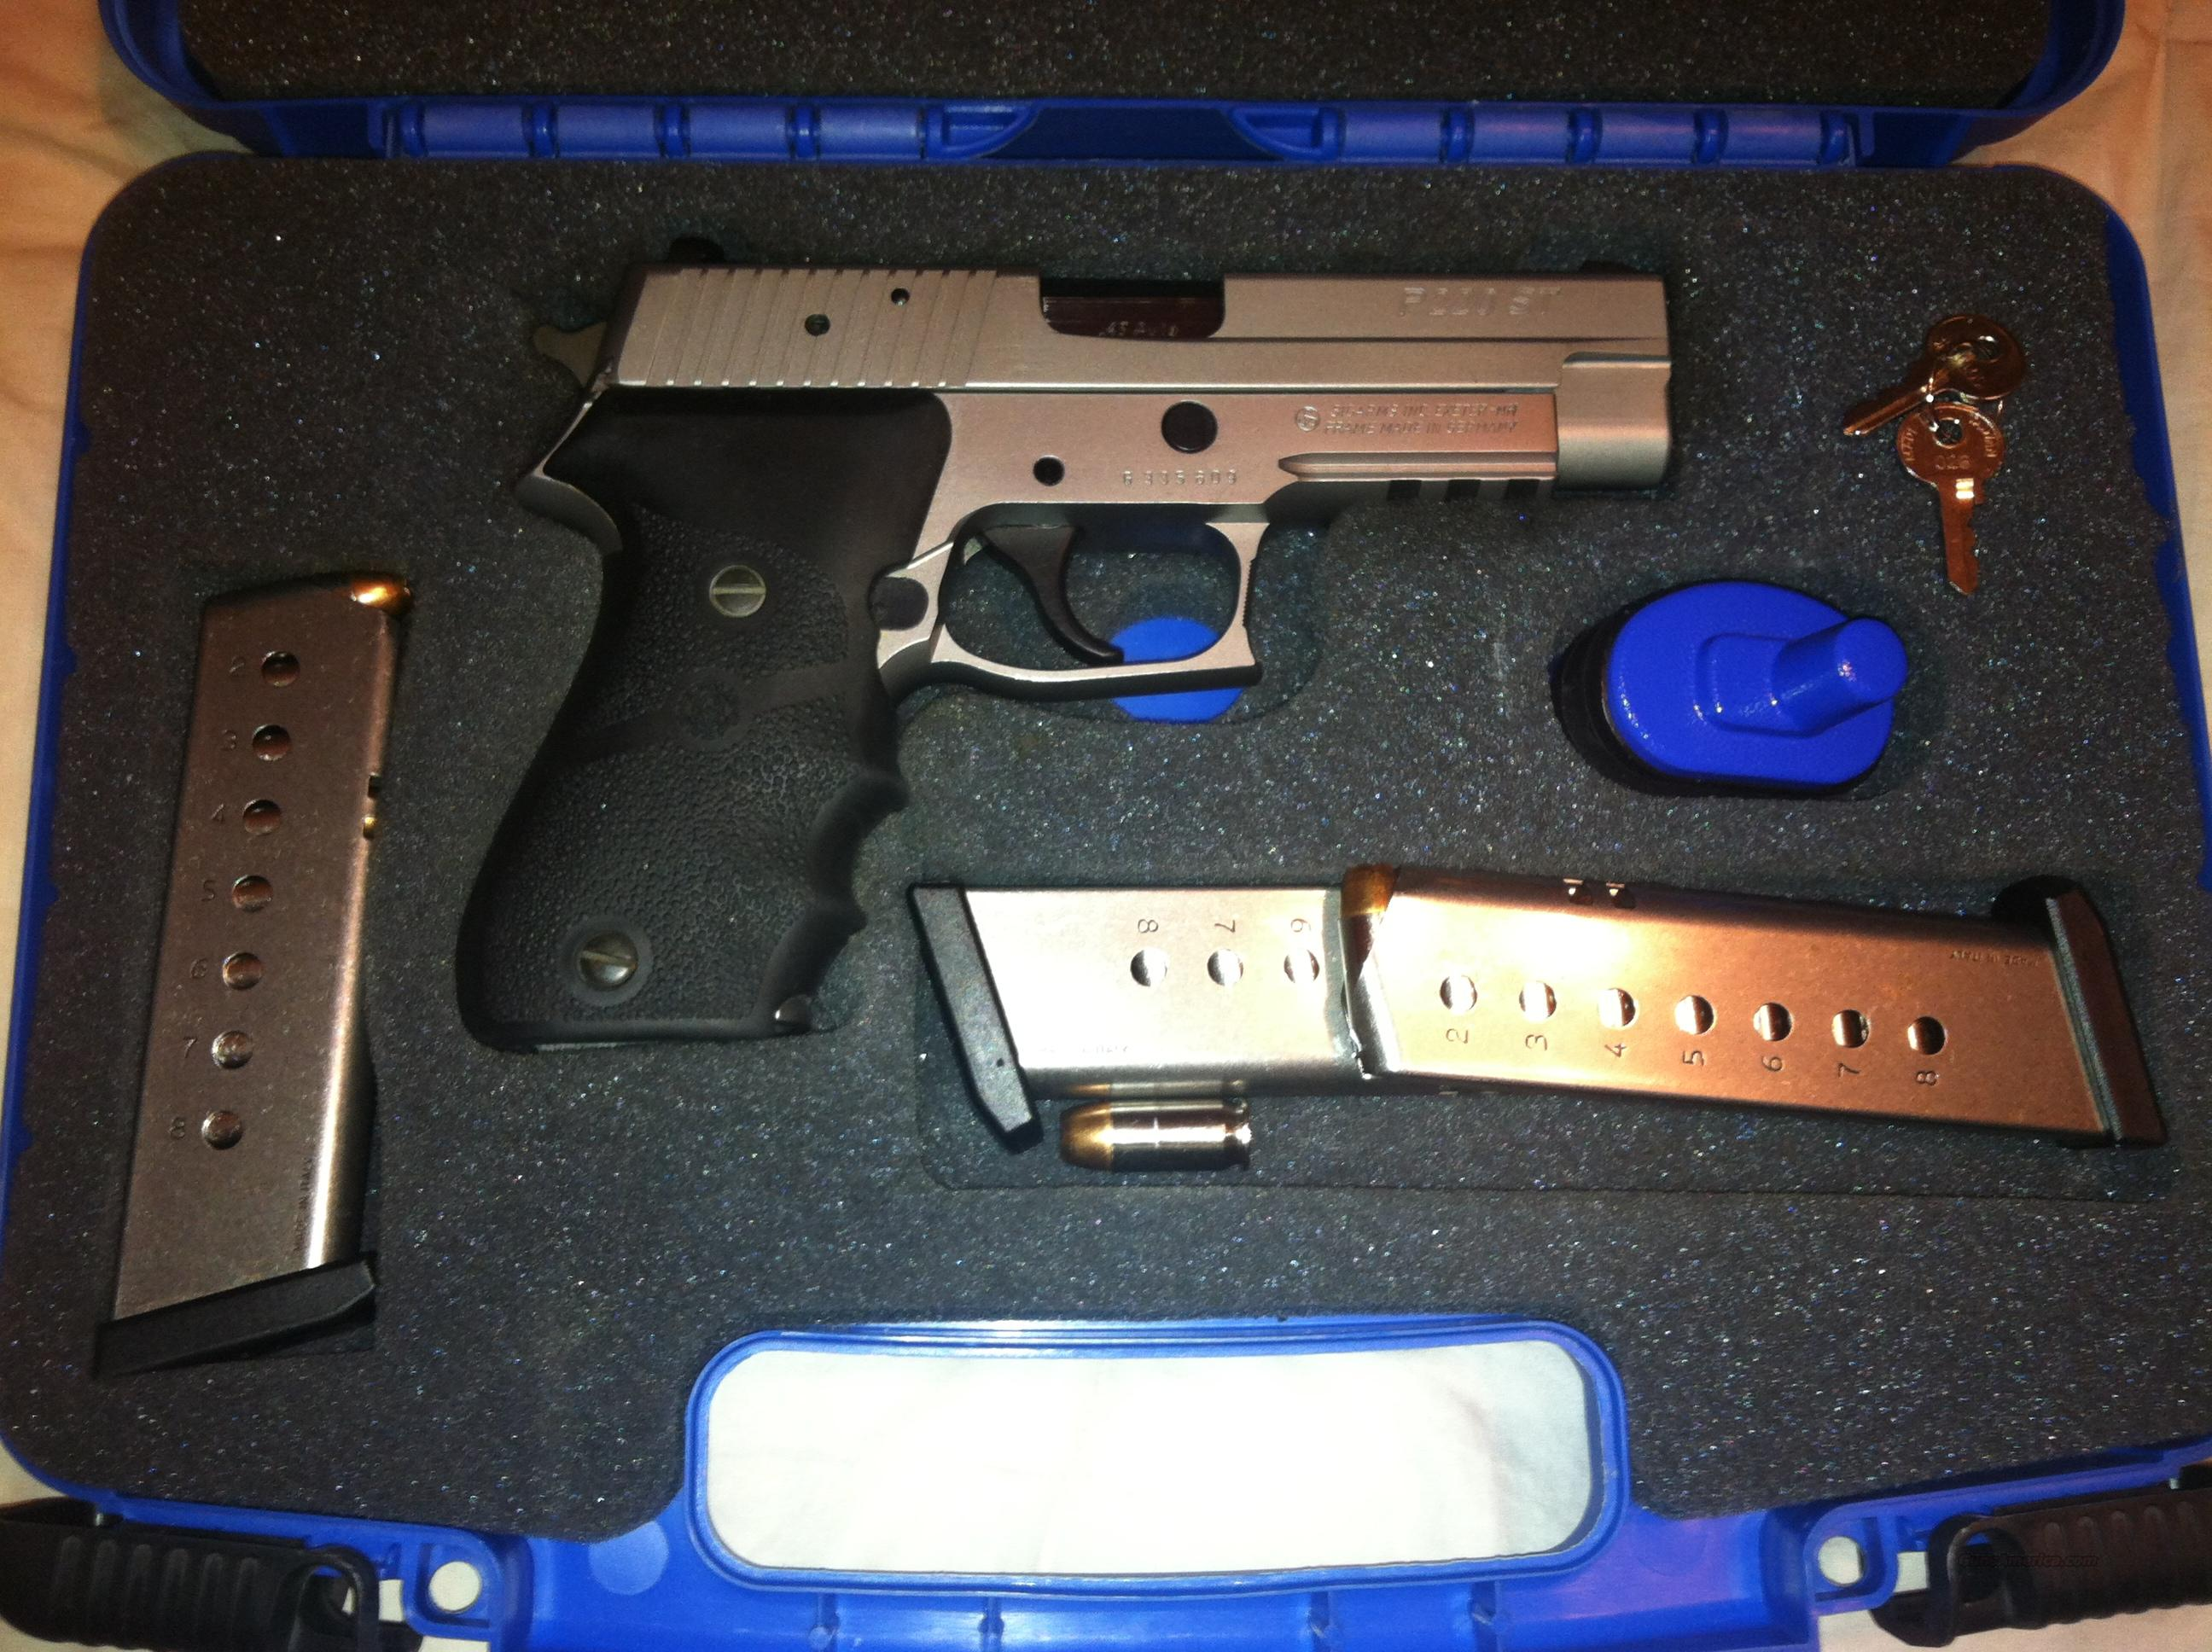 Sig Sauer P220 ST 45 Stainless w/ Night Sites and 3 Magazines  Guns > Pistols > Sig - Sauer/Sigarms Pistols > P220